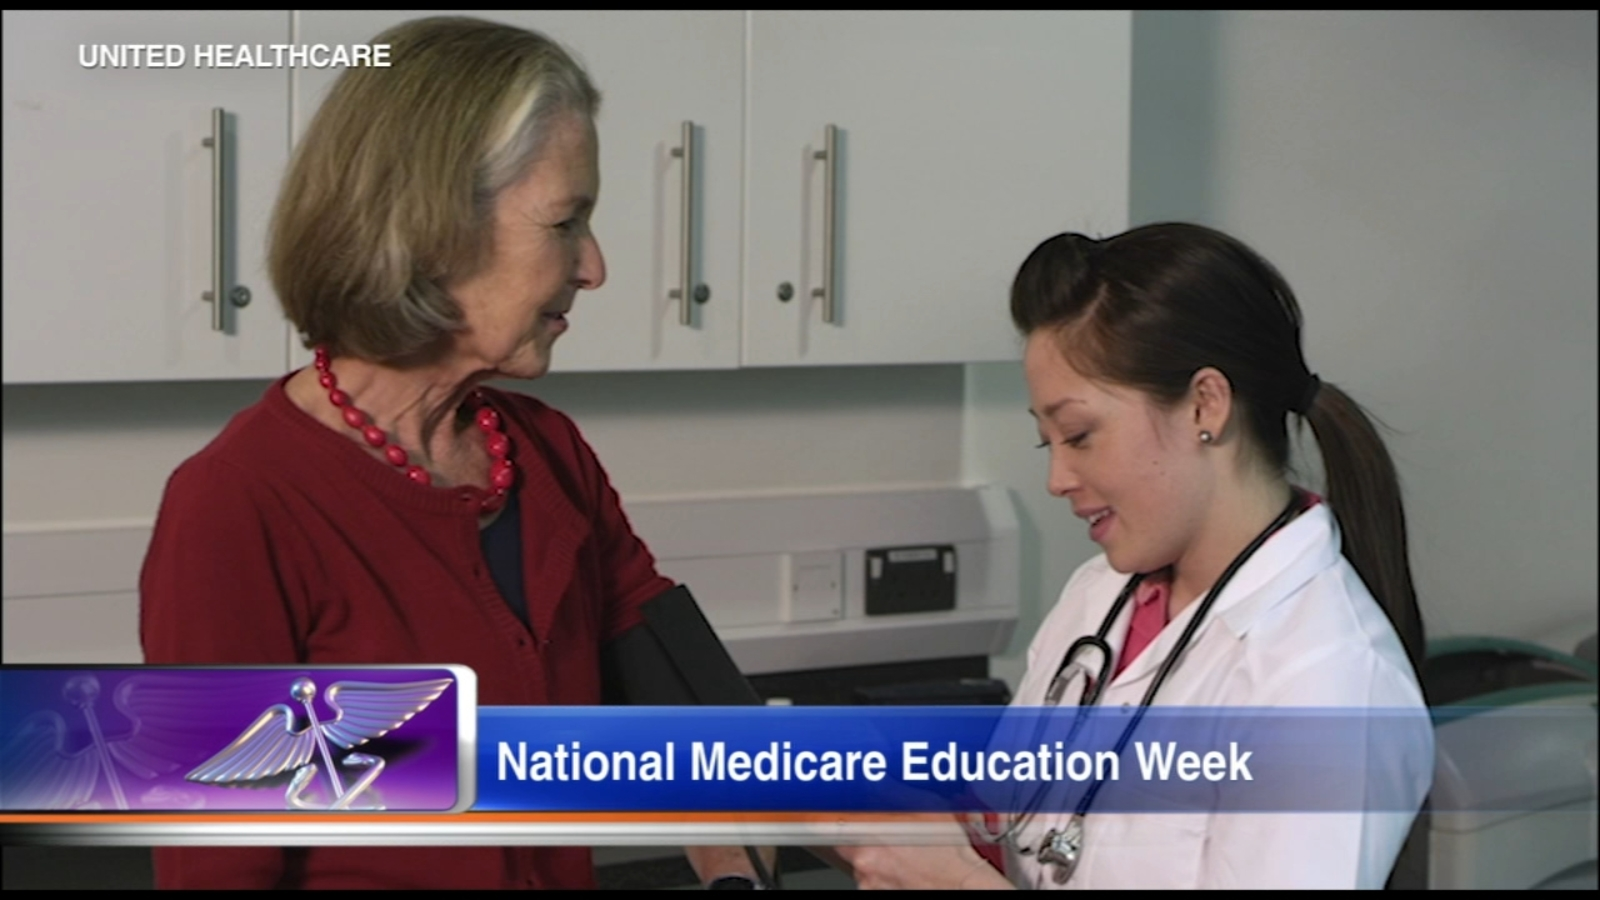 National Medicare Education Week returns to Chicago